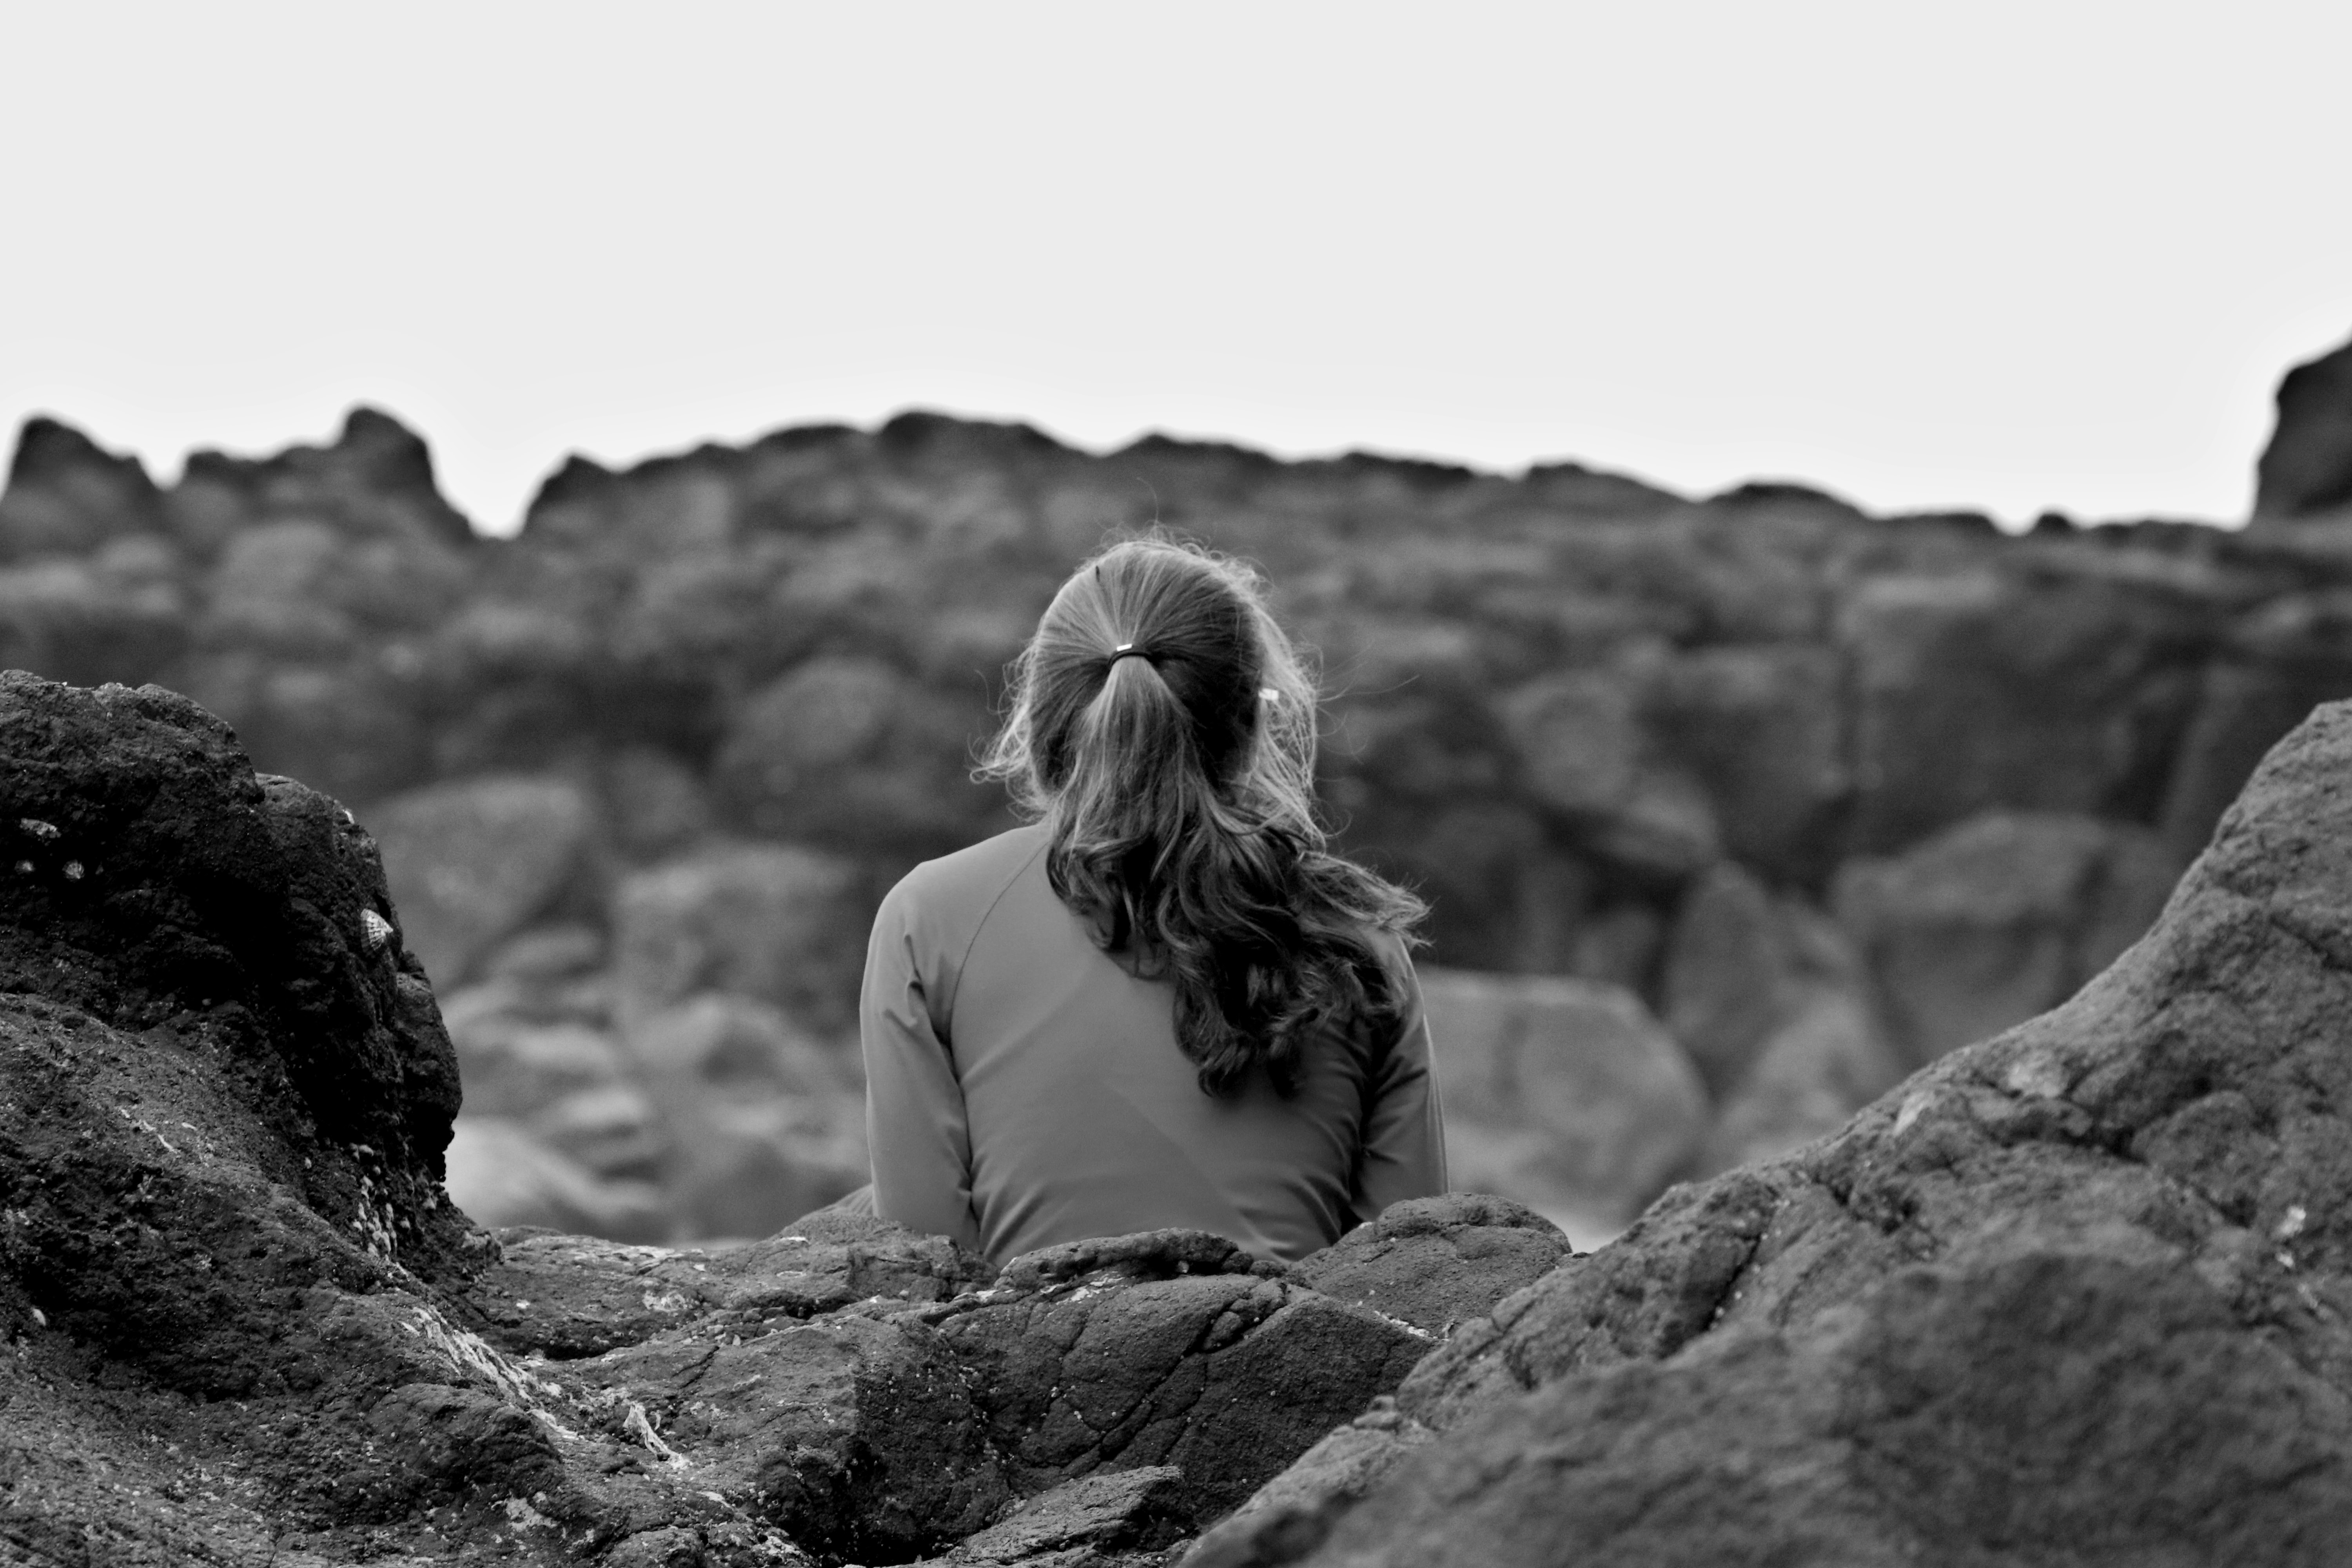 grayscale photography of woman sitting on rock